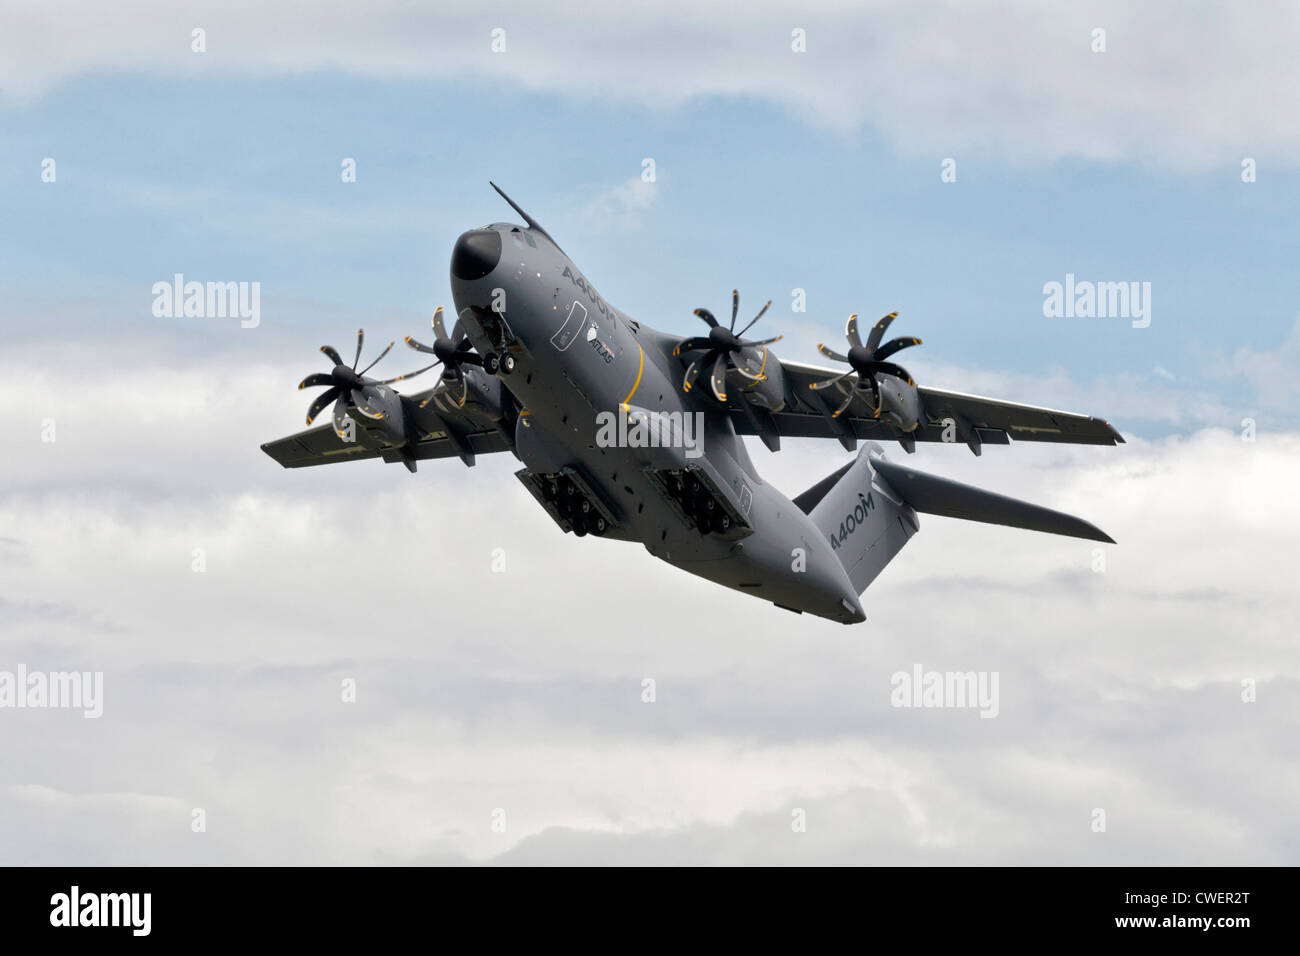 Airbus A400 Atlas heavylift transport aircraft - Stock Image